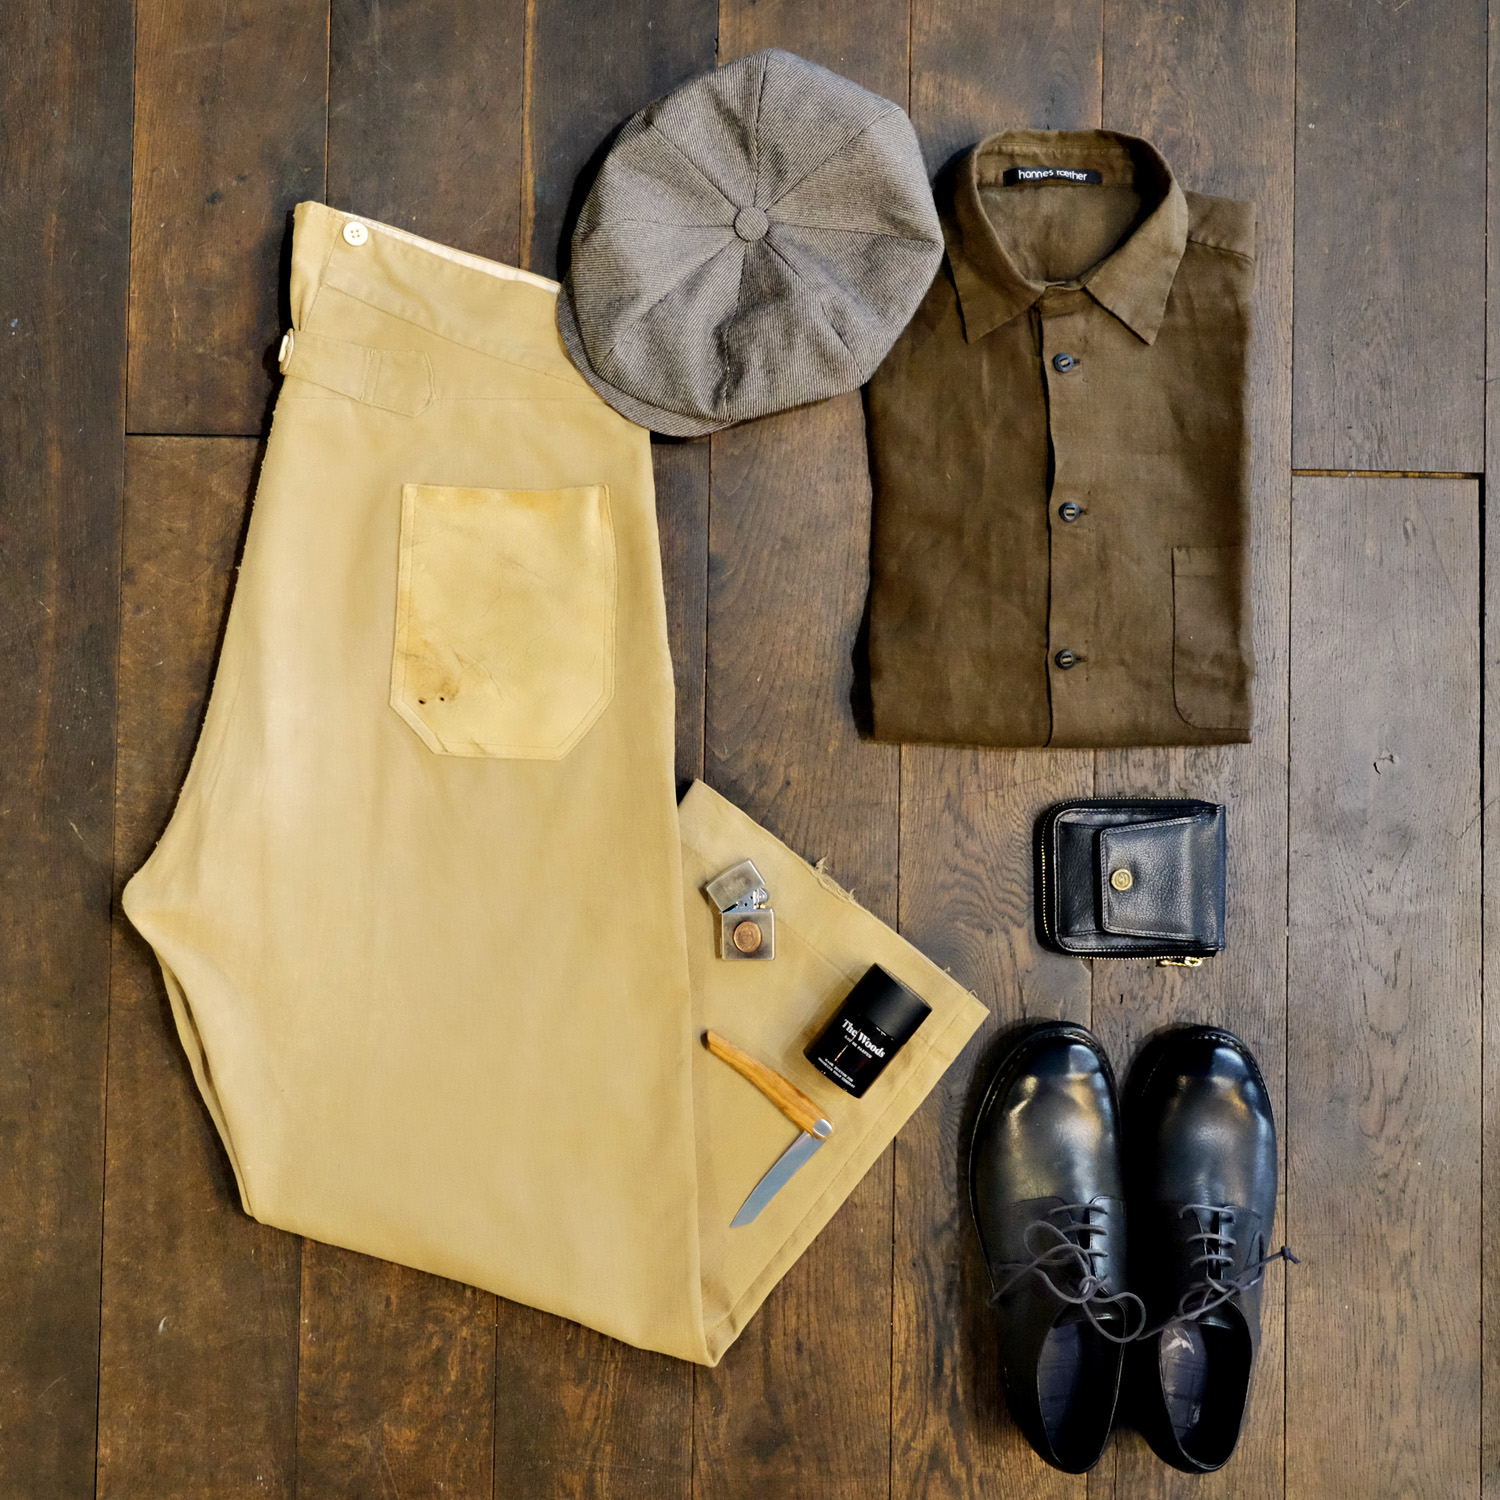 outfit-vintage-chino-frankreich-hannesroether-leinenhemd-braun-thelastconspiracy-thewoods-parfum-blacksign-kamm-perceval-messer-diefenthal-kappe